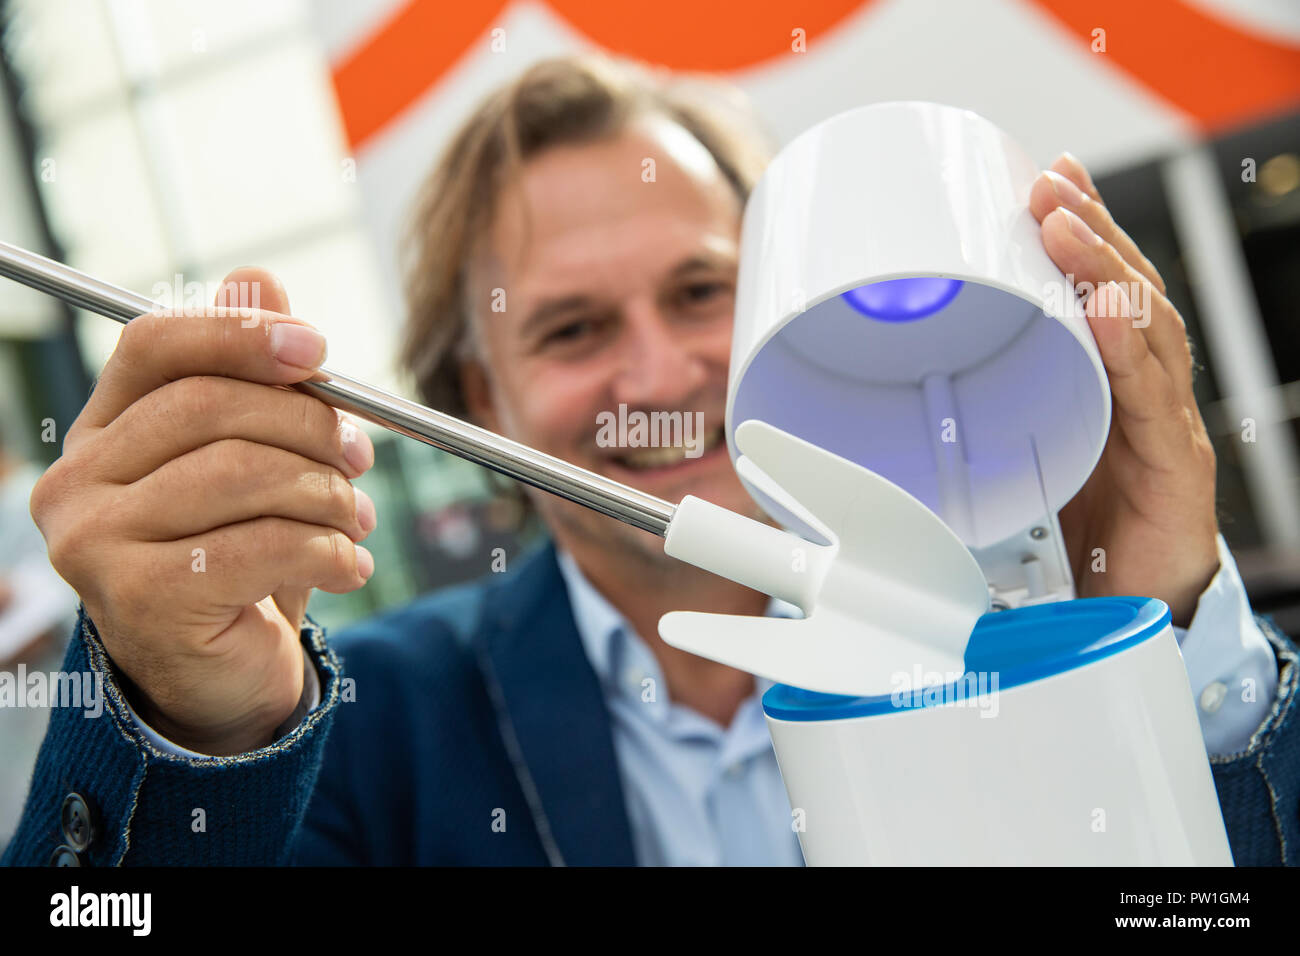 Nuremberg, Bavaria. 12th Oct, 2018. Jochen Schmiddem, product designer, presenting a silicone toilet brush during the innovation show at the International Inventors' Fair 'iENA', which is almost completely free of germs and bacteria in its closed container by UV-C irradiation. The fair celebrates its 70th anniversary this year and will take place from 1 to 4 November in Nuremberg. Credit: Daniel Karmann/dpa/Alamy Live News - Stock Image